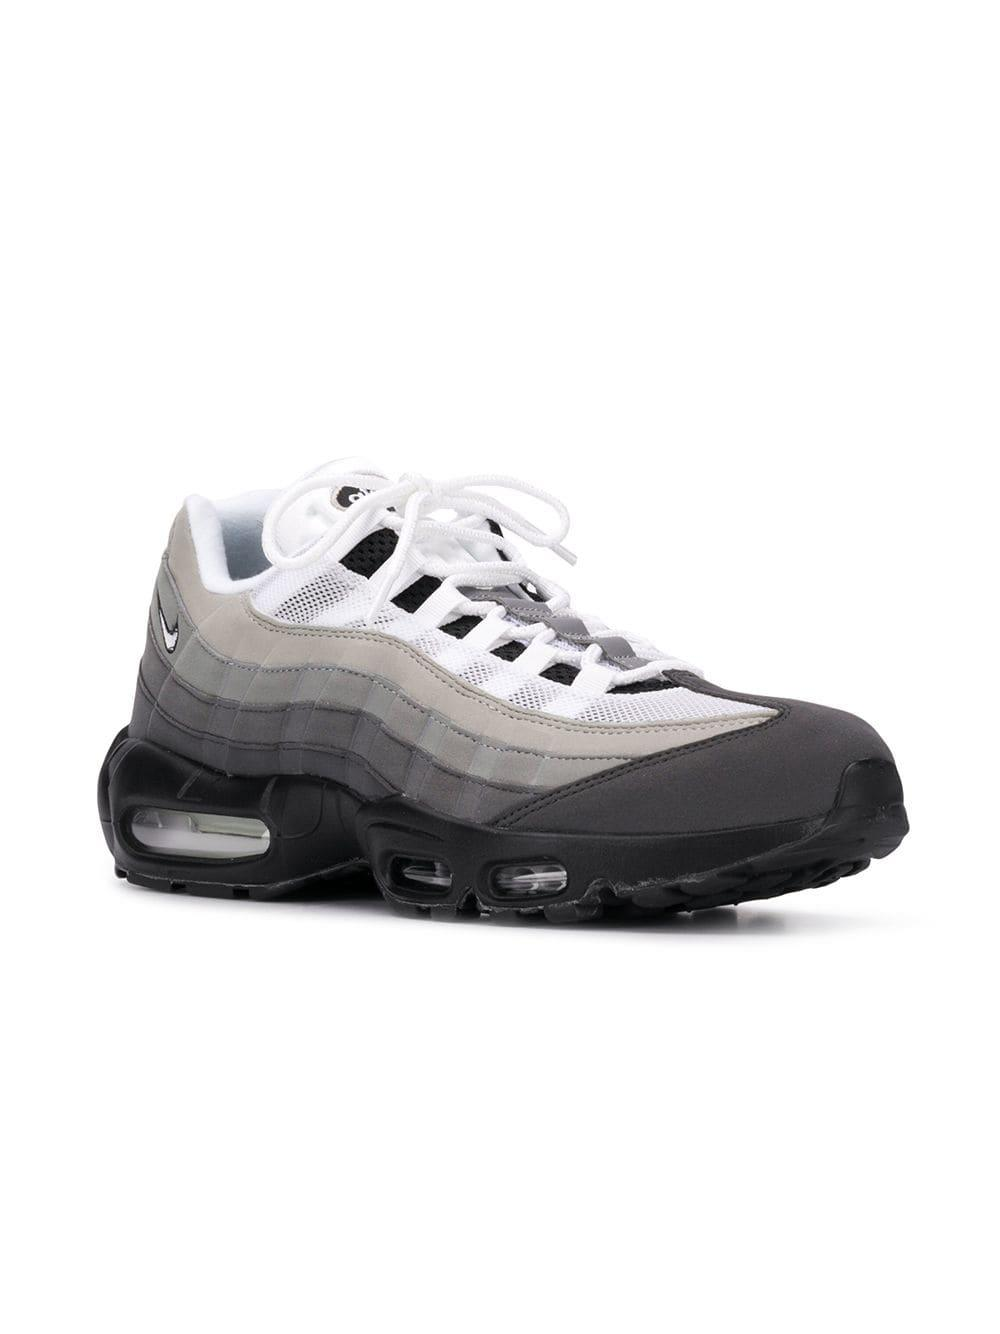 6287e08ba9a Lyst - Nike Air Max 95 Sneakers in Gray for Men - Save 1%